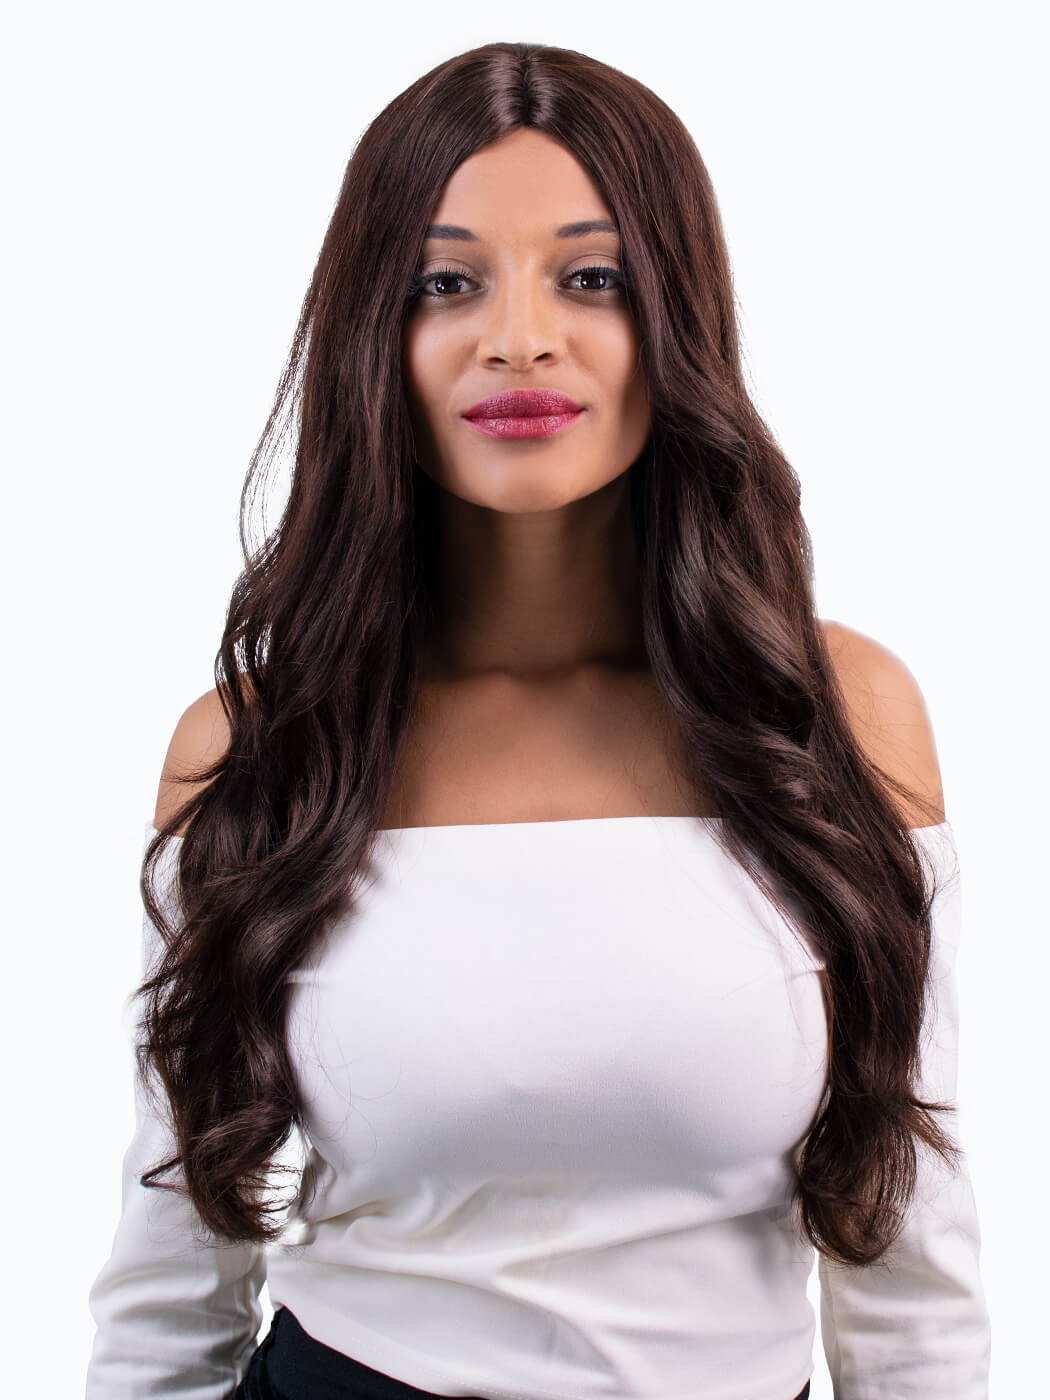 Amour - Tim Carli long wig on model front view | Long human hair wig | Capless Wig